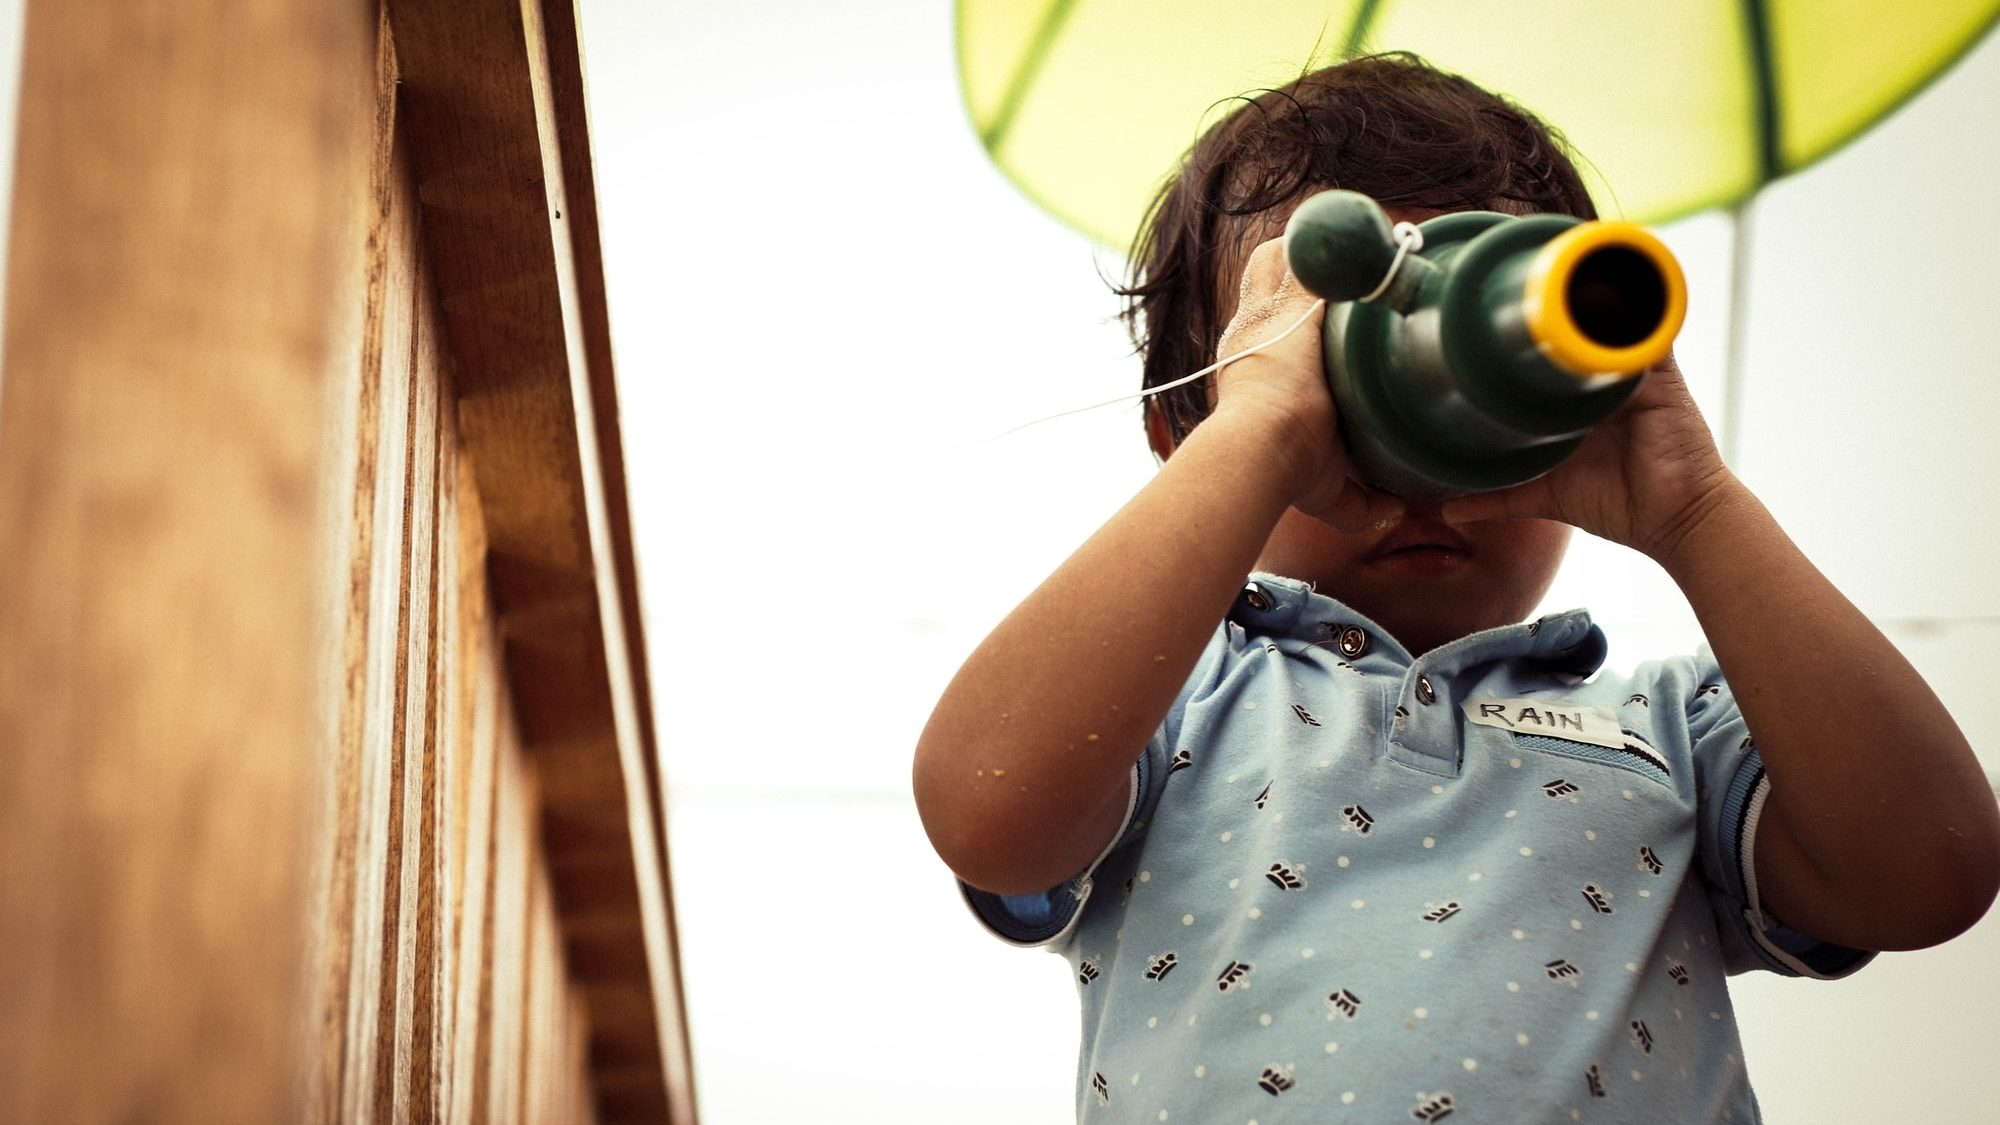 A young child looks through binoculars.